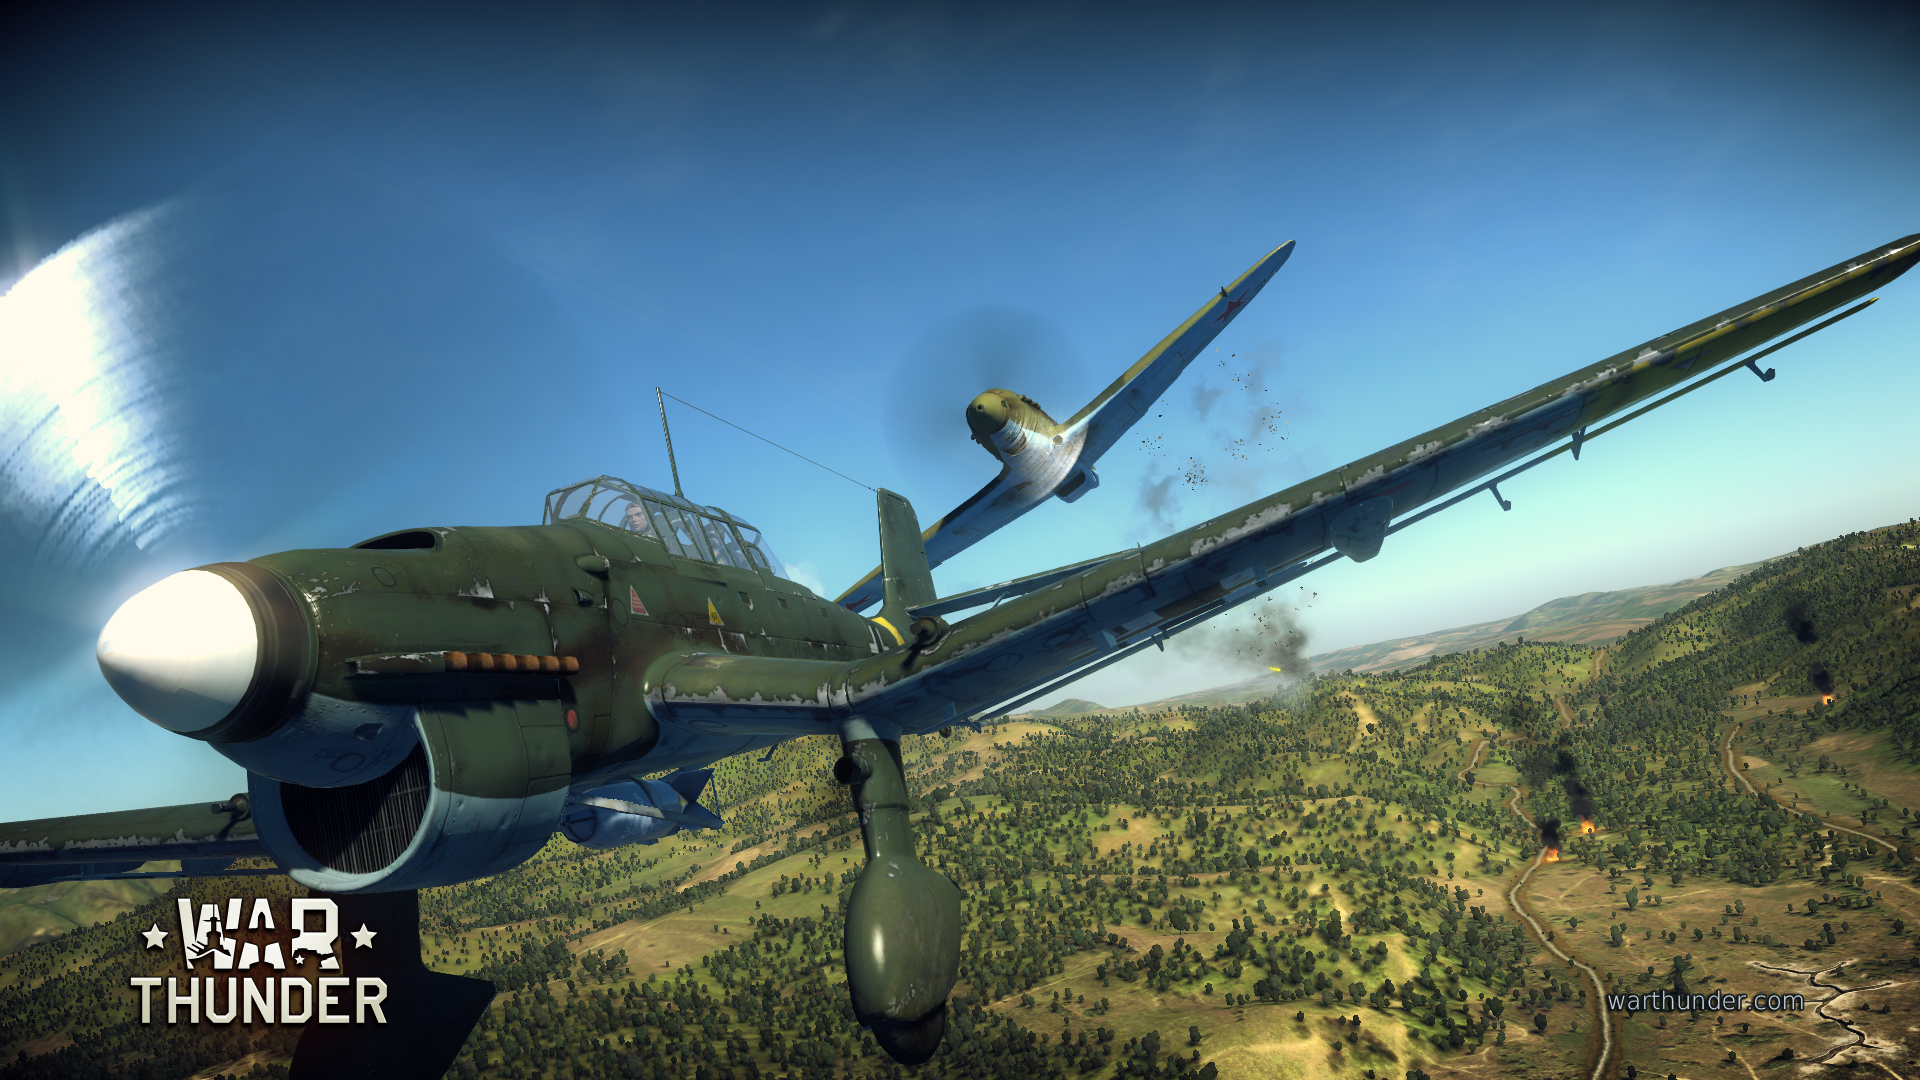 Flight of War Thunder